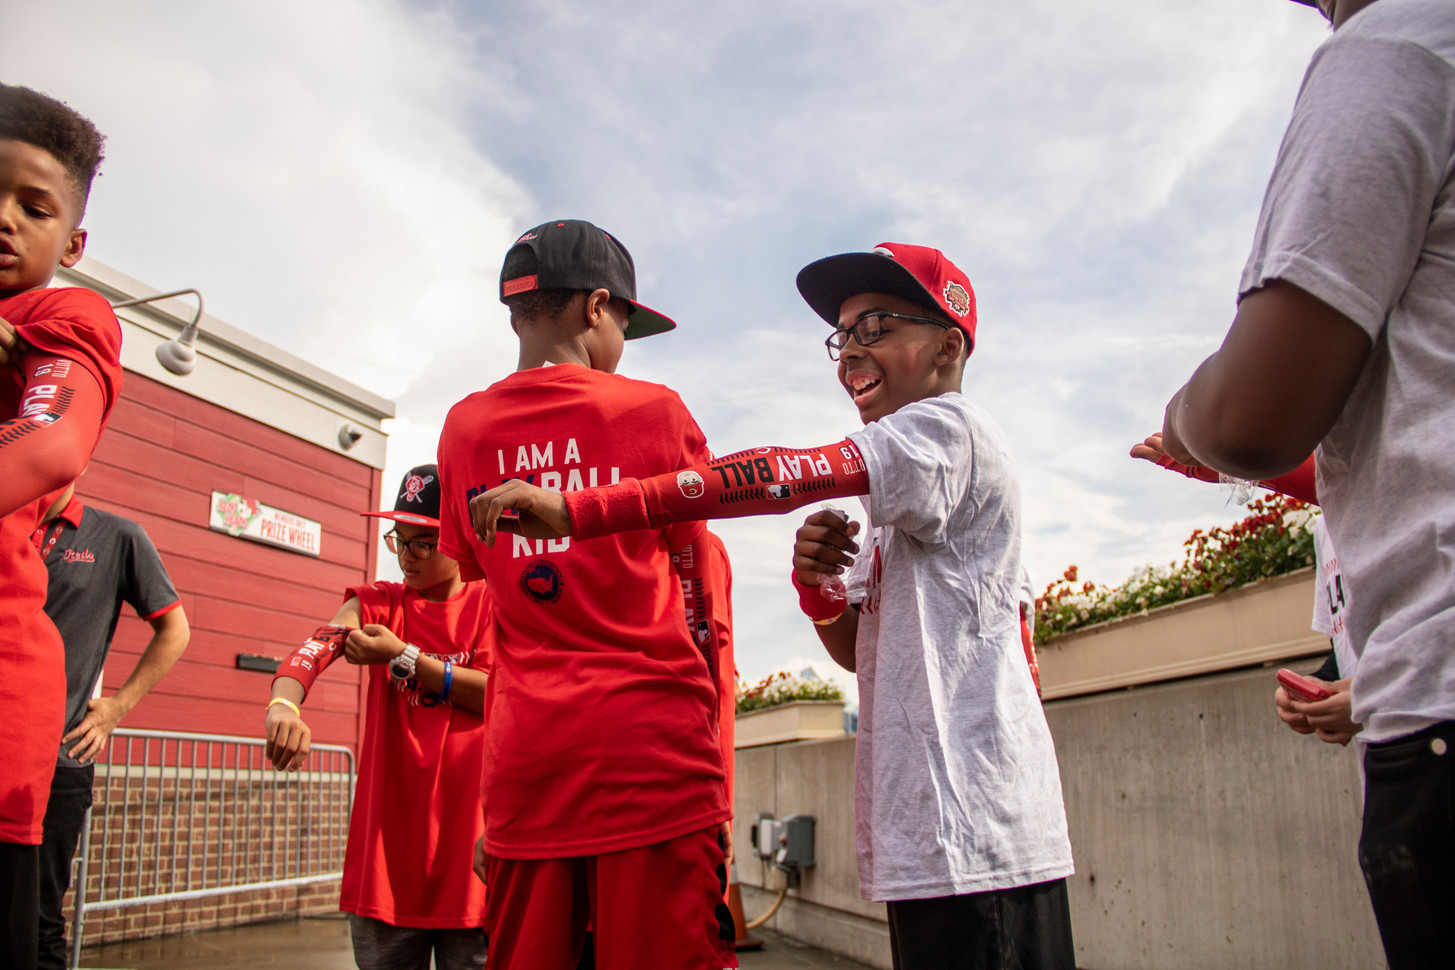 The Cincinnati Reds hold the Play Ball Event which brings kids baseball and softball teams together with some Cincinnati celebrities to promote getting out and playing sports.